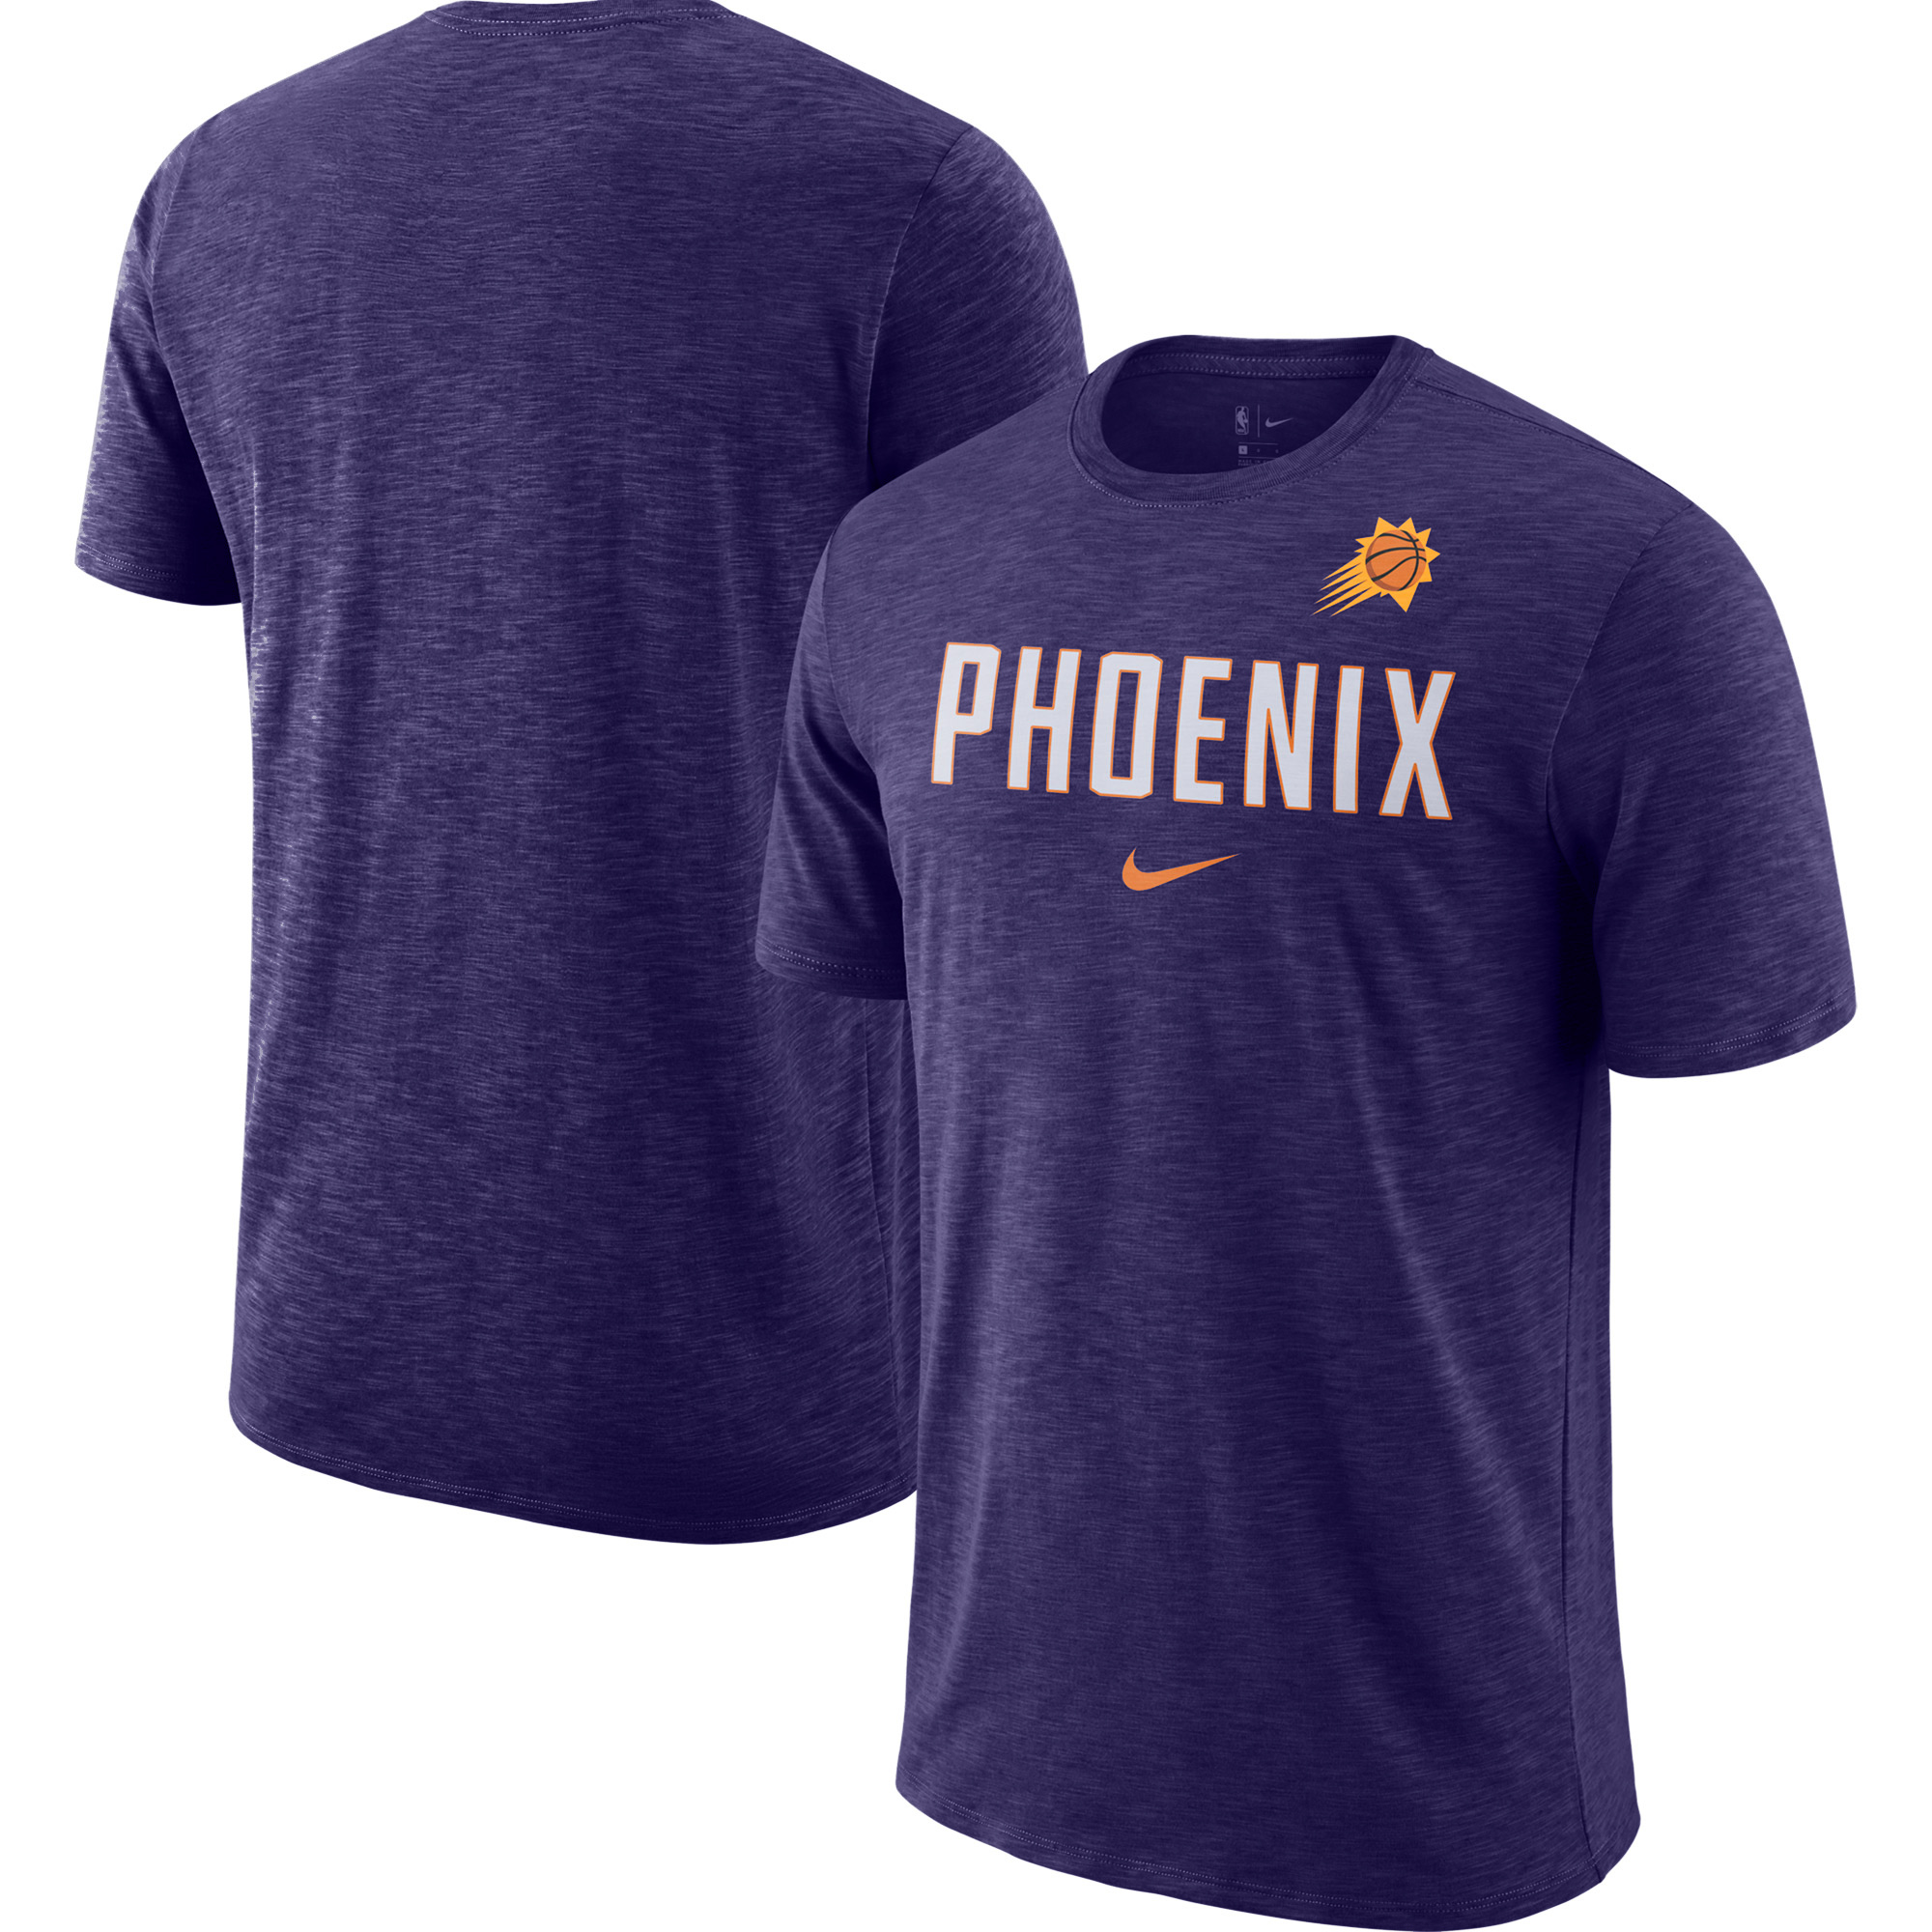 Phoenix Suns Nike Essential Facility Slub Performance T-Shirt - Heathered Purple